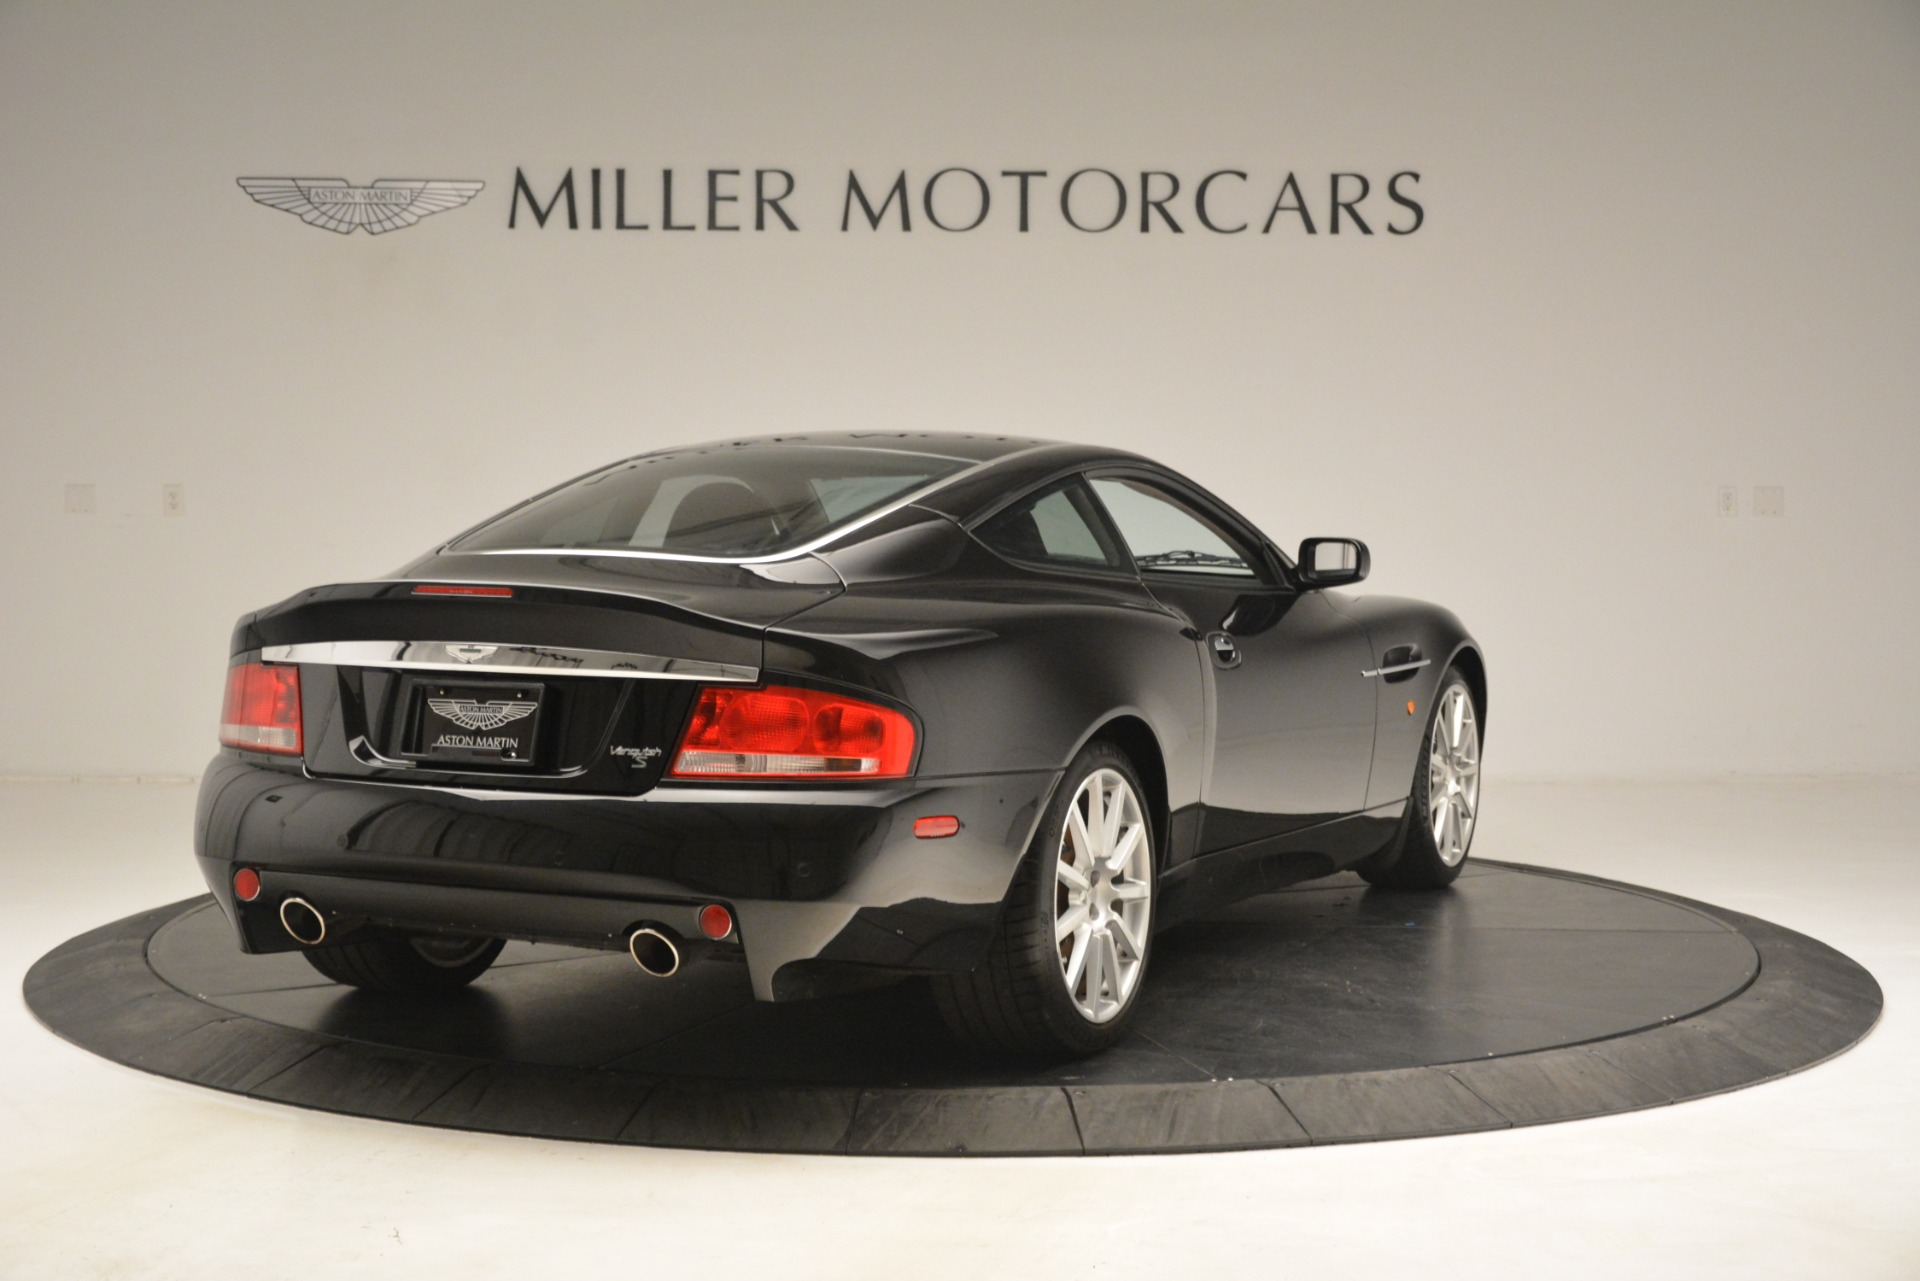 Used 2005 Aston Martin V12 Vanquish S Coupe For Sale In Greenwich, CT 3218_p7